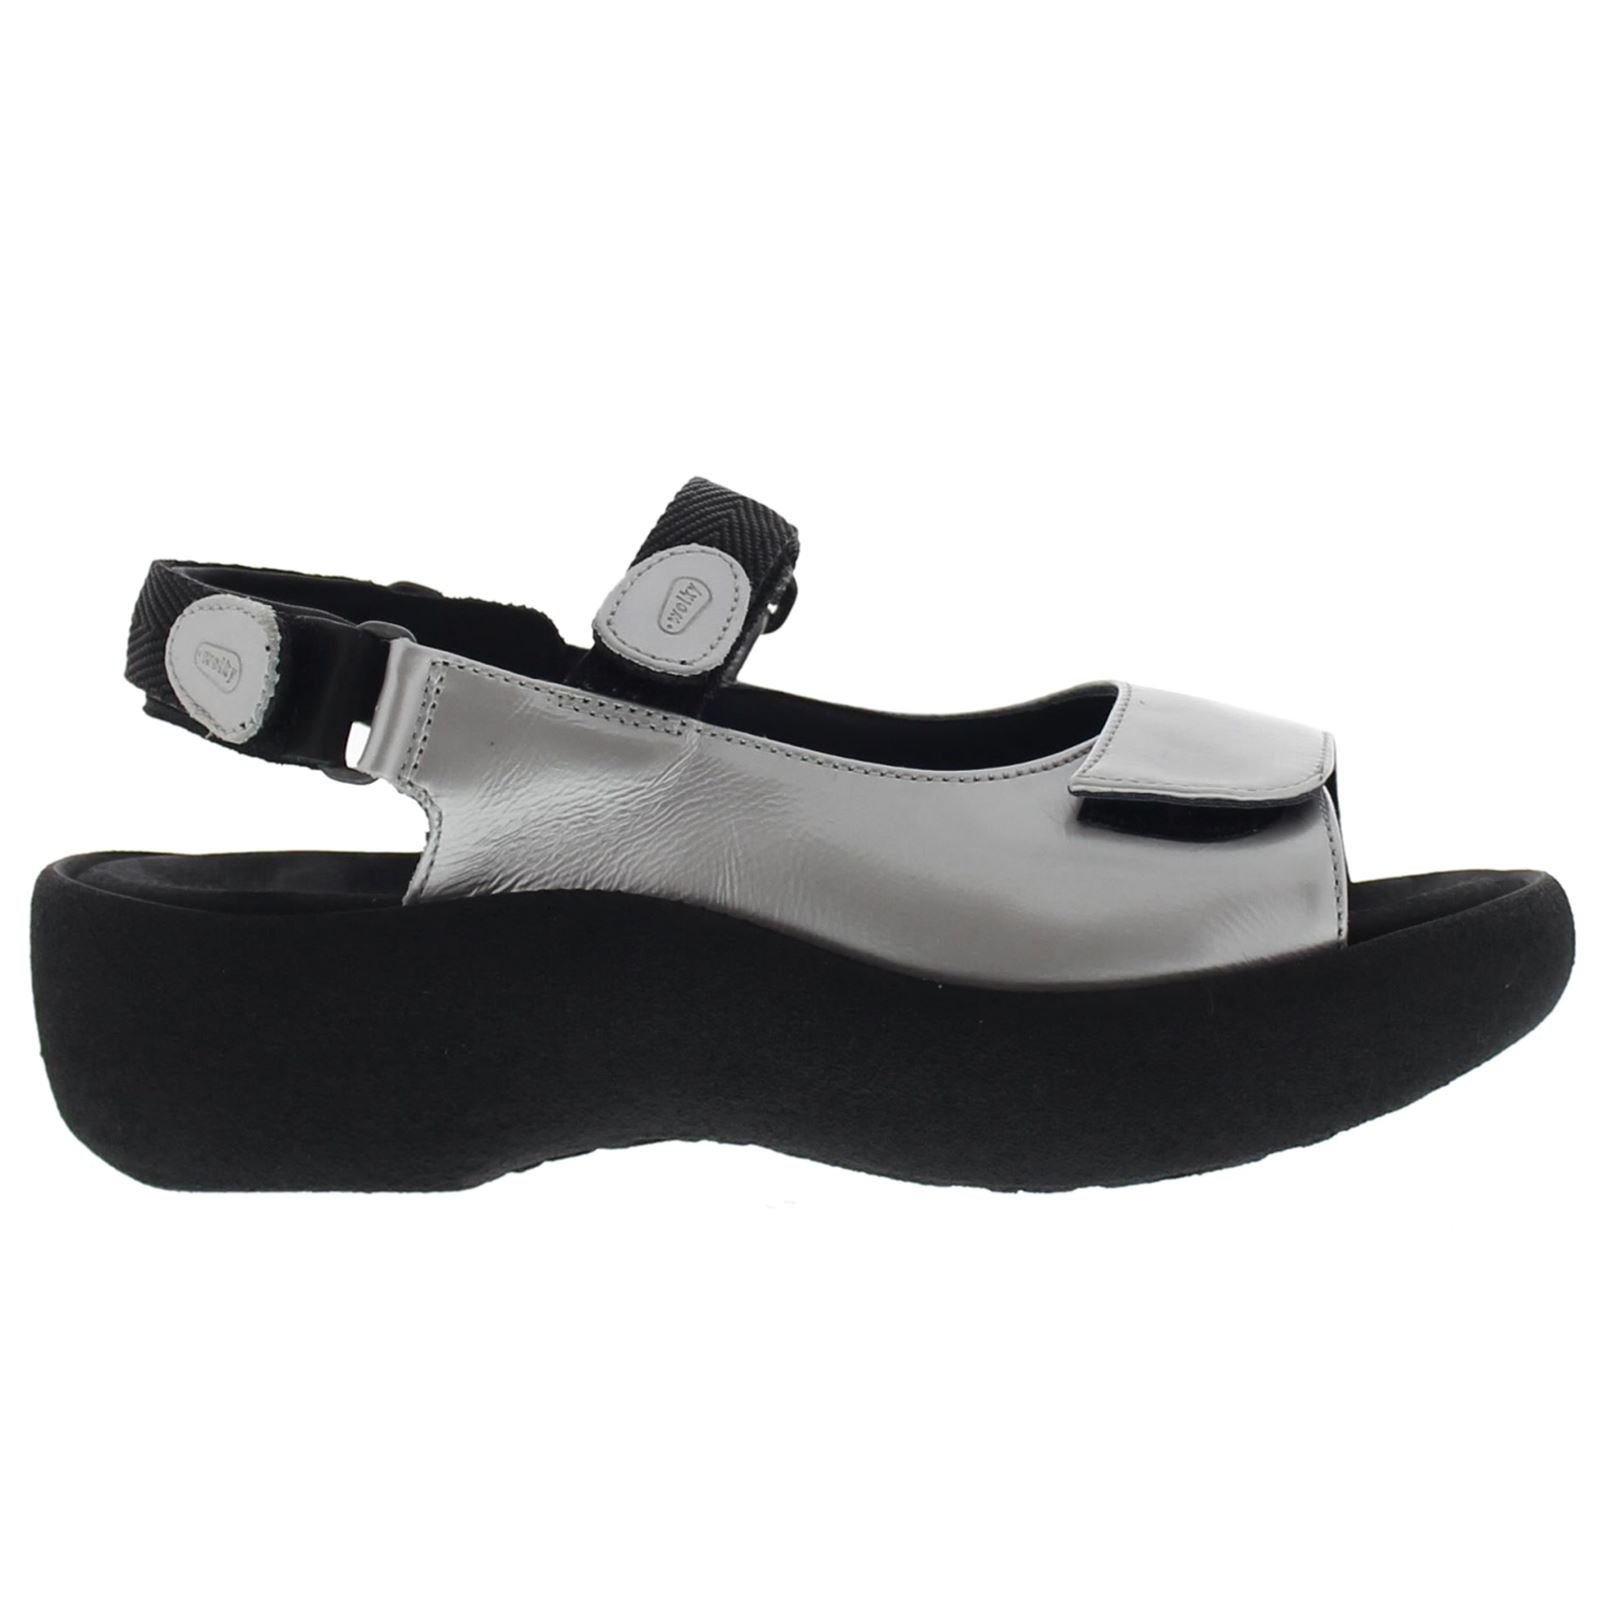 Wolky Comfort Sandals Jewel - 80200 Grey Patent Metallic Leather - 39